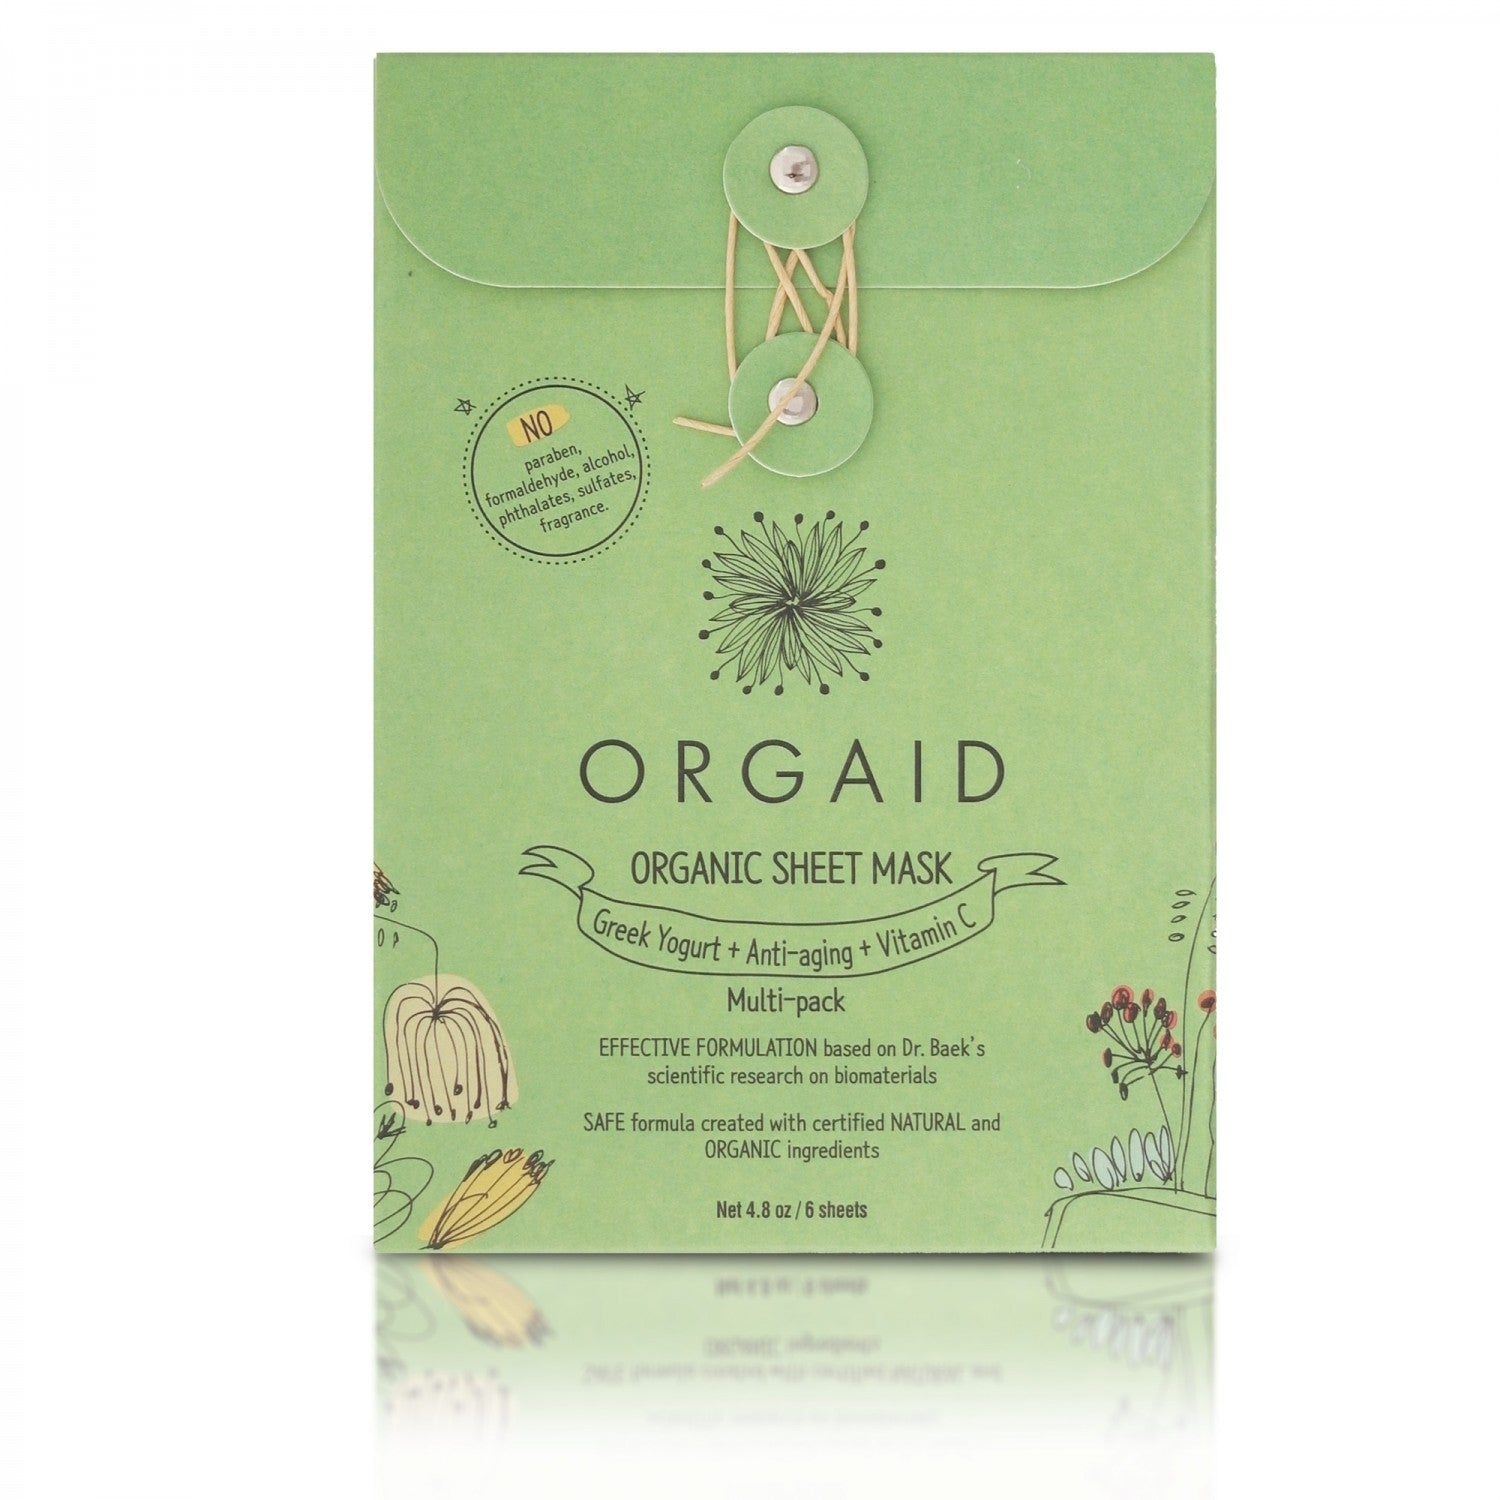 Orgaid Multipack sheet mask 6 pack